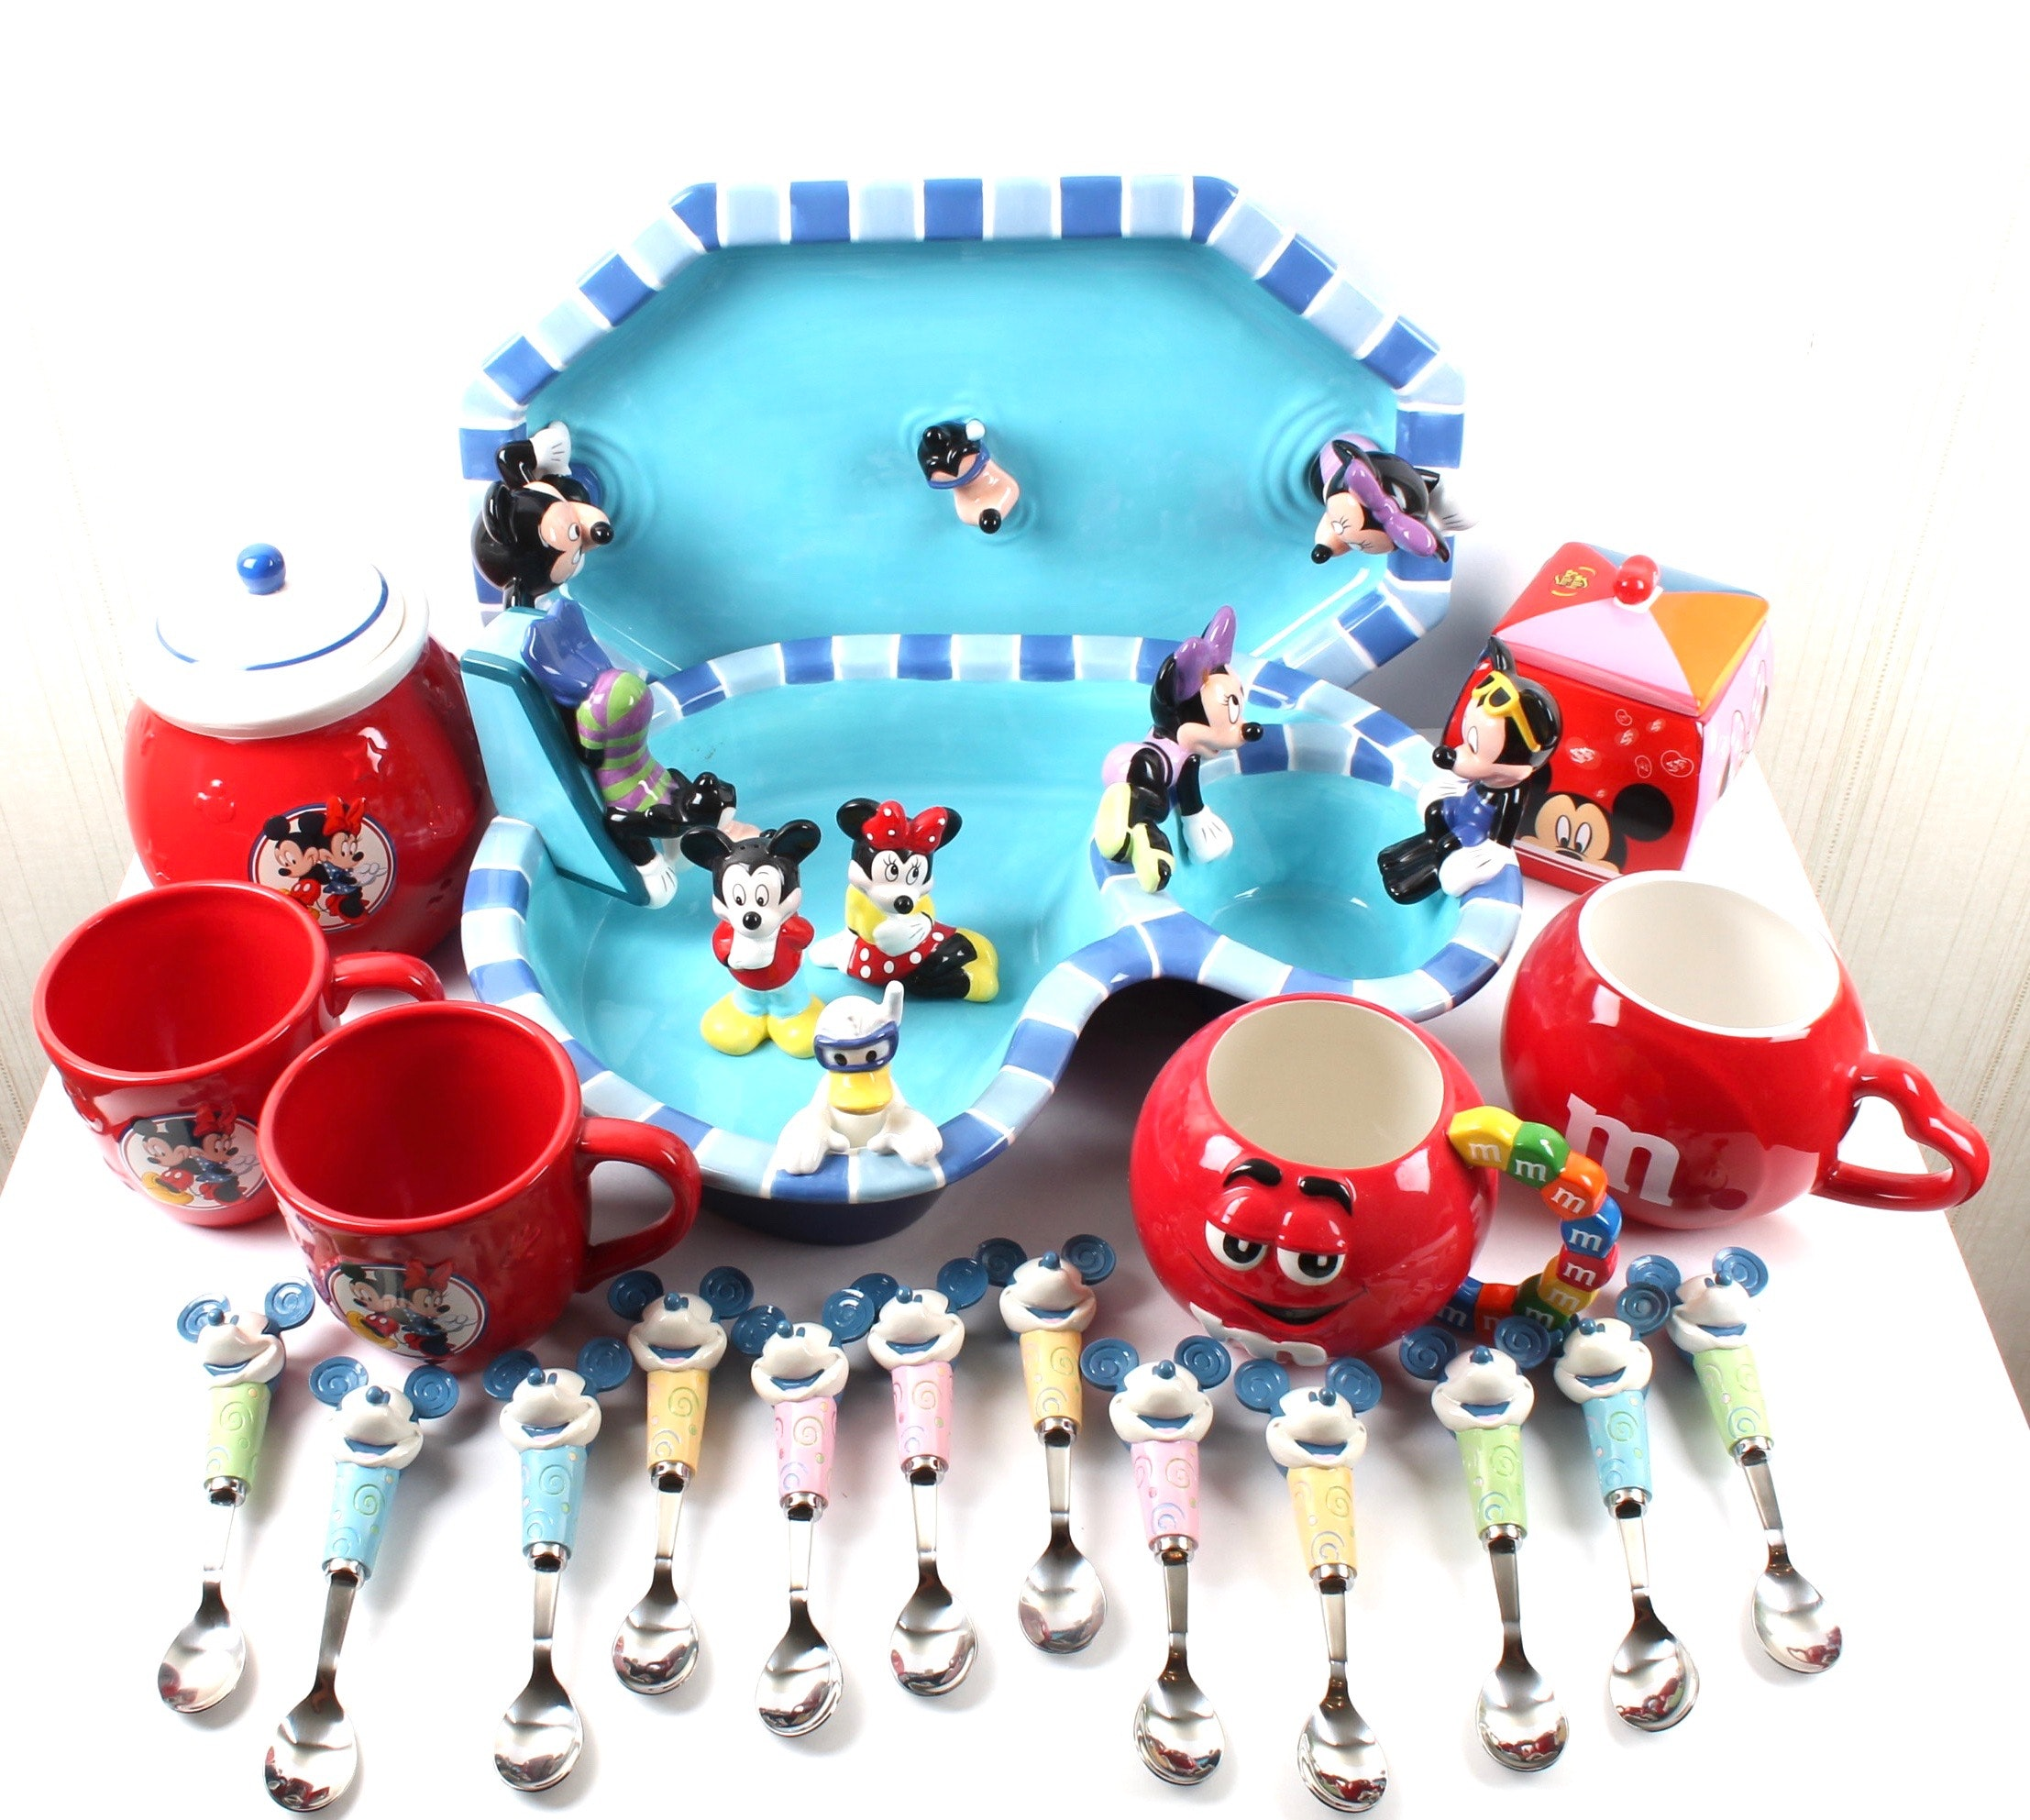 Mickey Mouse Themed Ceramic Tableware